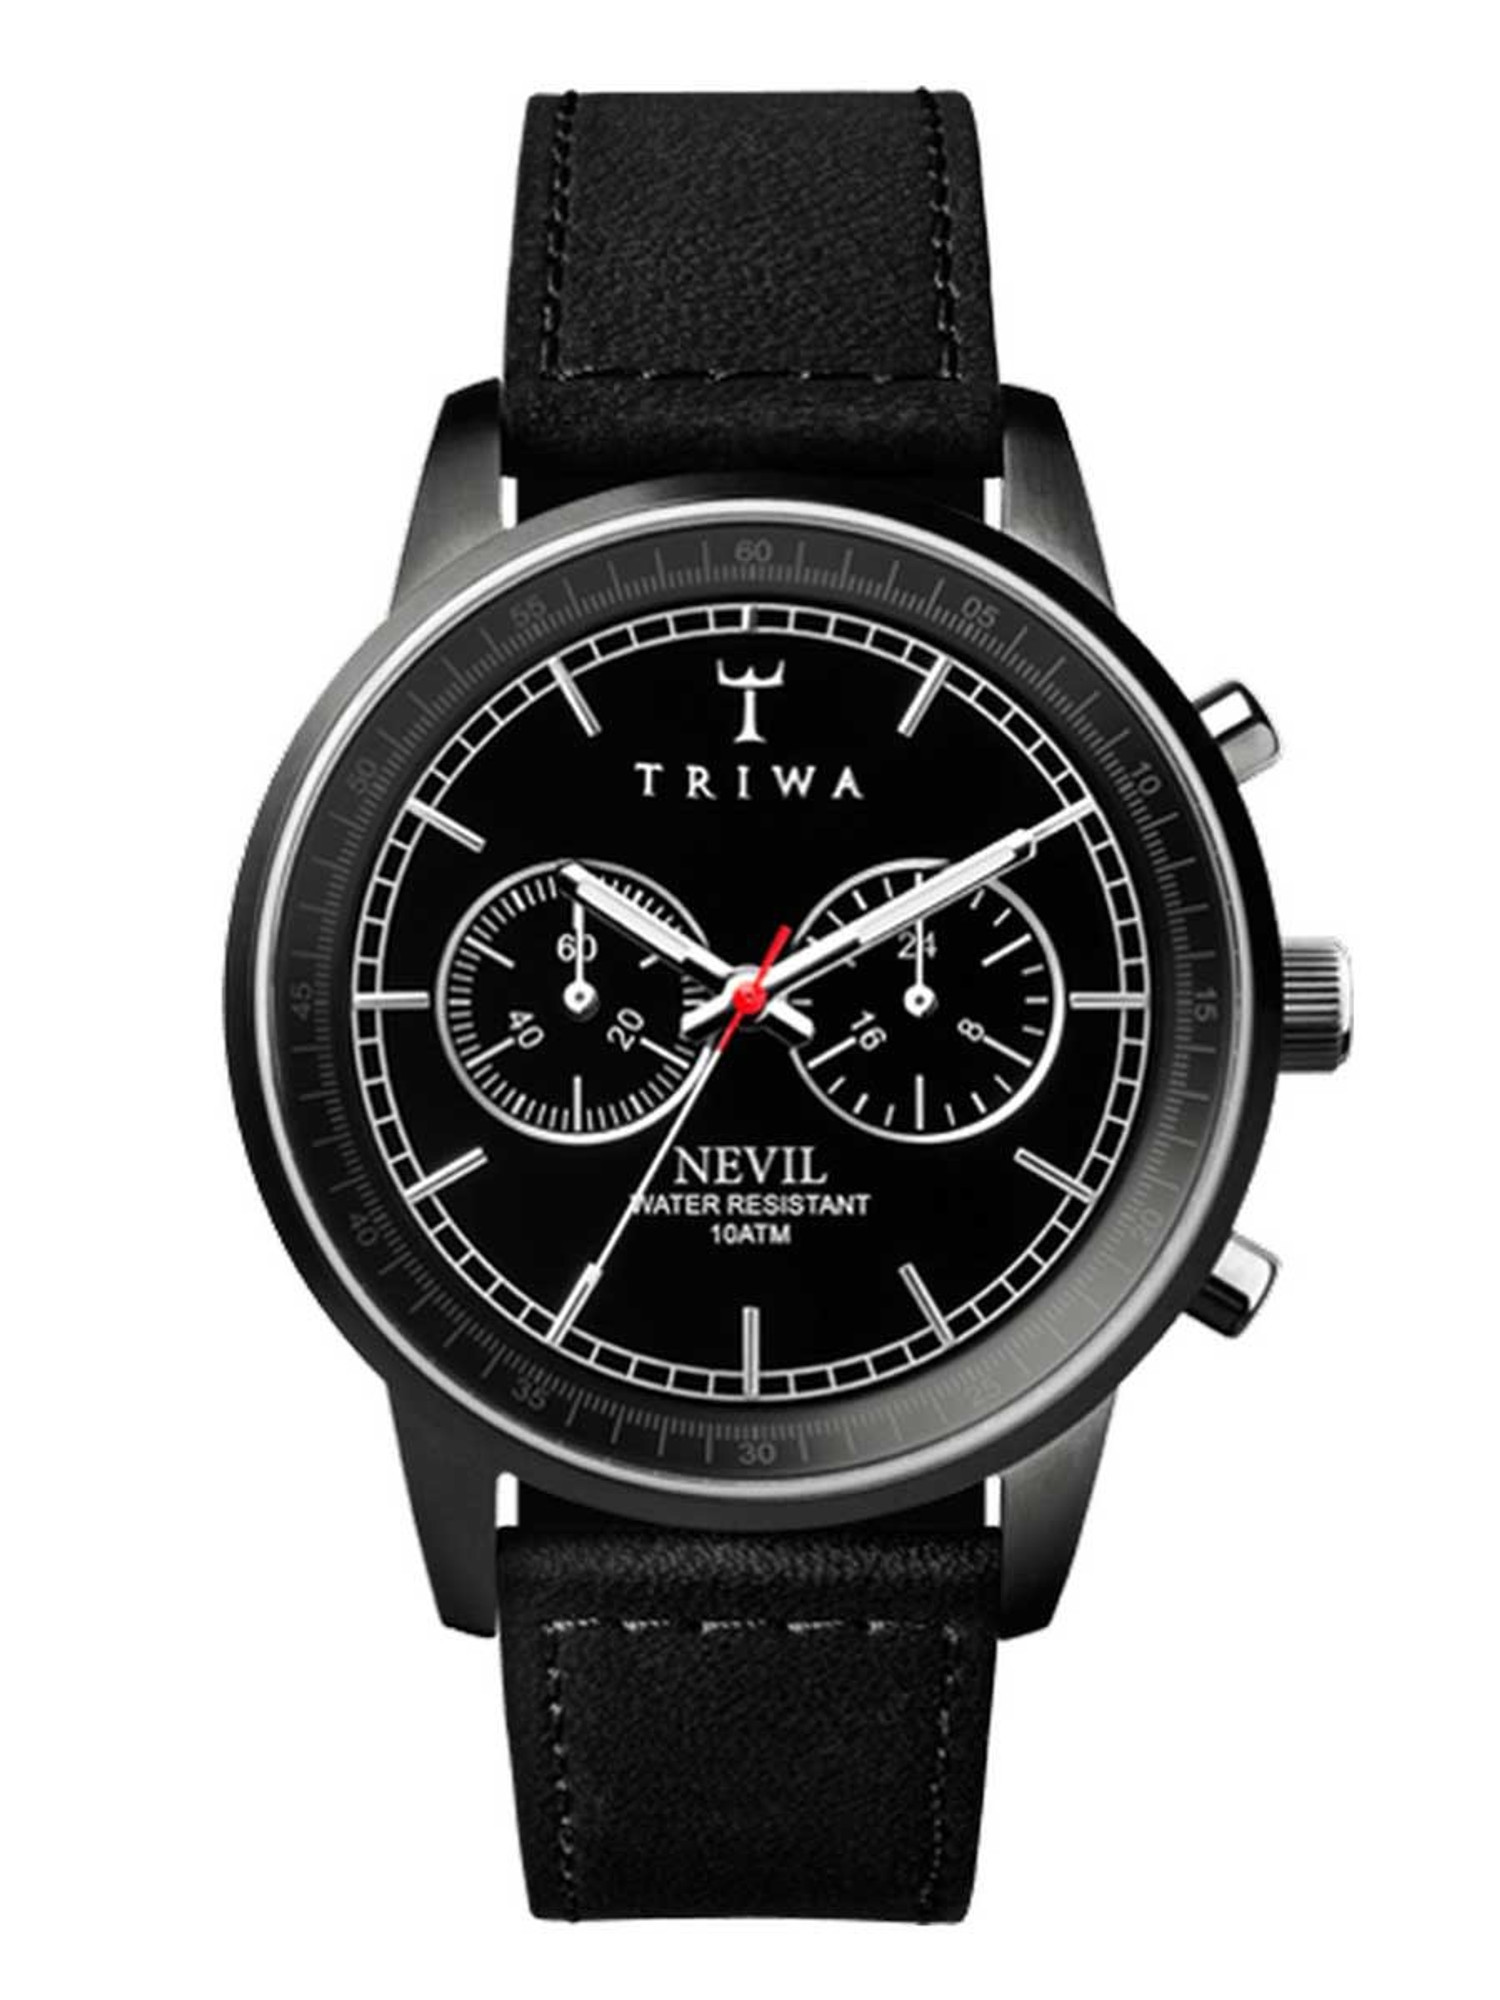 TRIWA Midnight Nevil Chronograph NEST111-SC010112